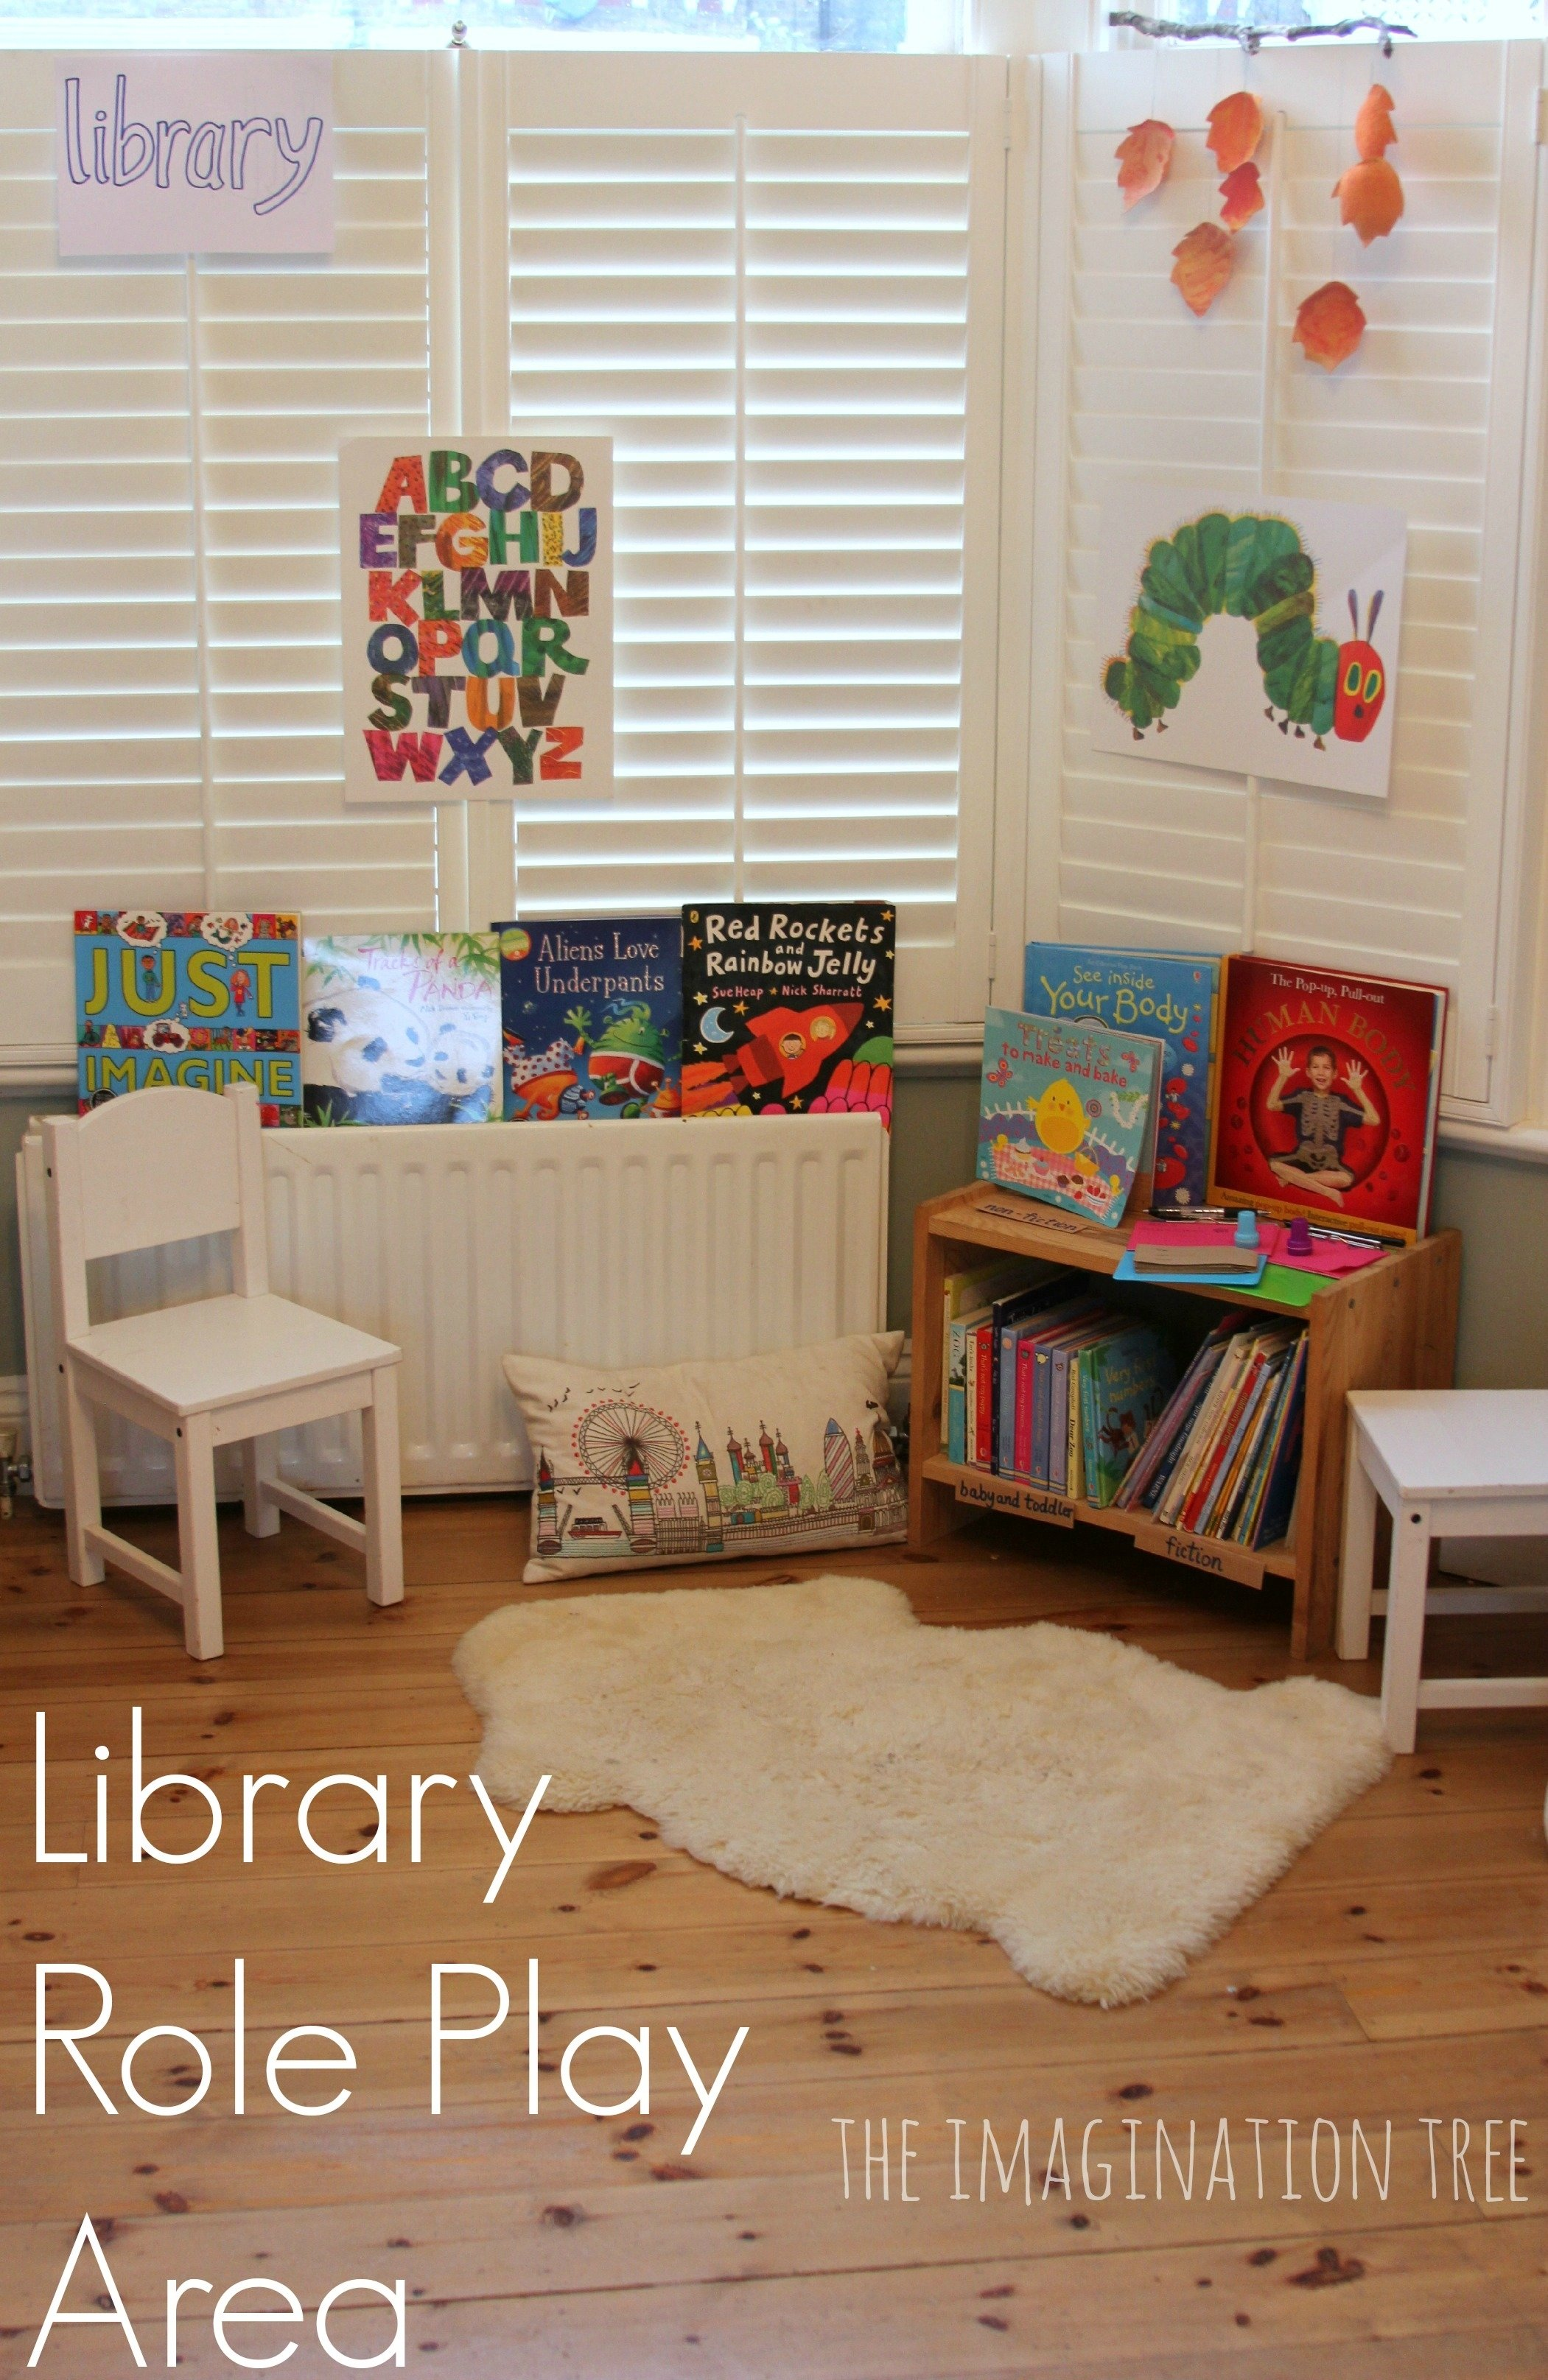 10 Lovable Role Play Ideas For The Bedroom chic role playing ideas for the bedroom on library role play area 2020